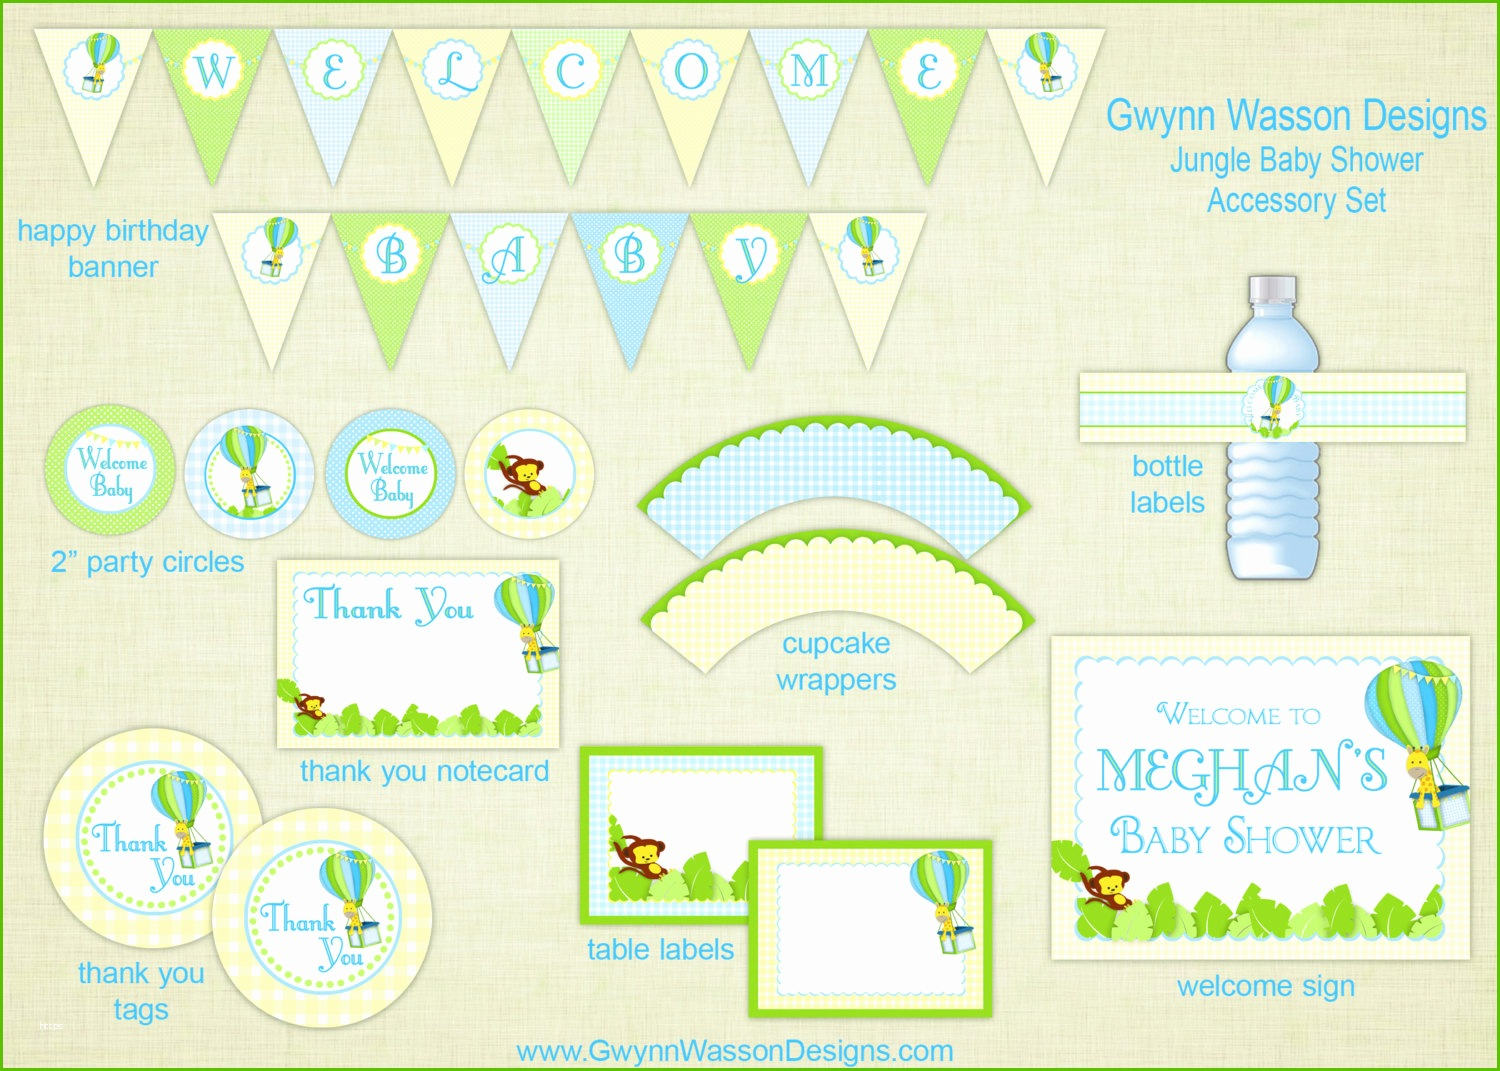 Full Size of Baby Shower:89+ Indulging Baby Shower Banner Picture Inspirations Baby Shower Hairstyles With Modern Baby Shower Plus Baby Shower Venues Near Me Together With My Baby Shower